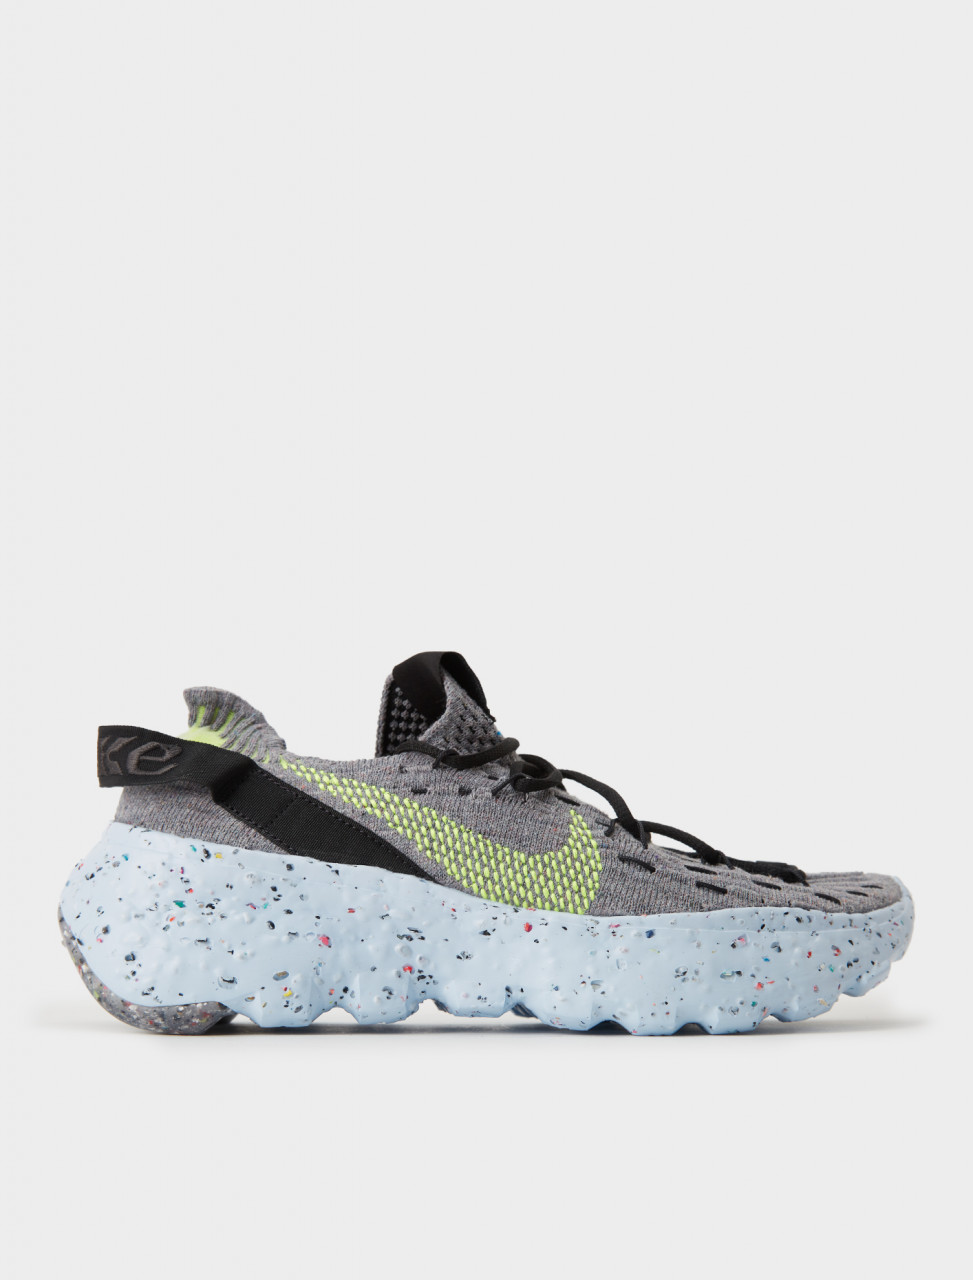 WOMEN'S NIKE SPACE HIPPIE 04 Sneaker in Grey/Volt-Black-Dark Smoke Grey